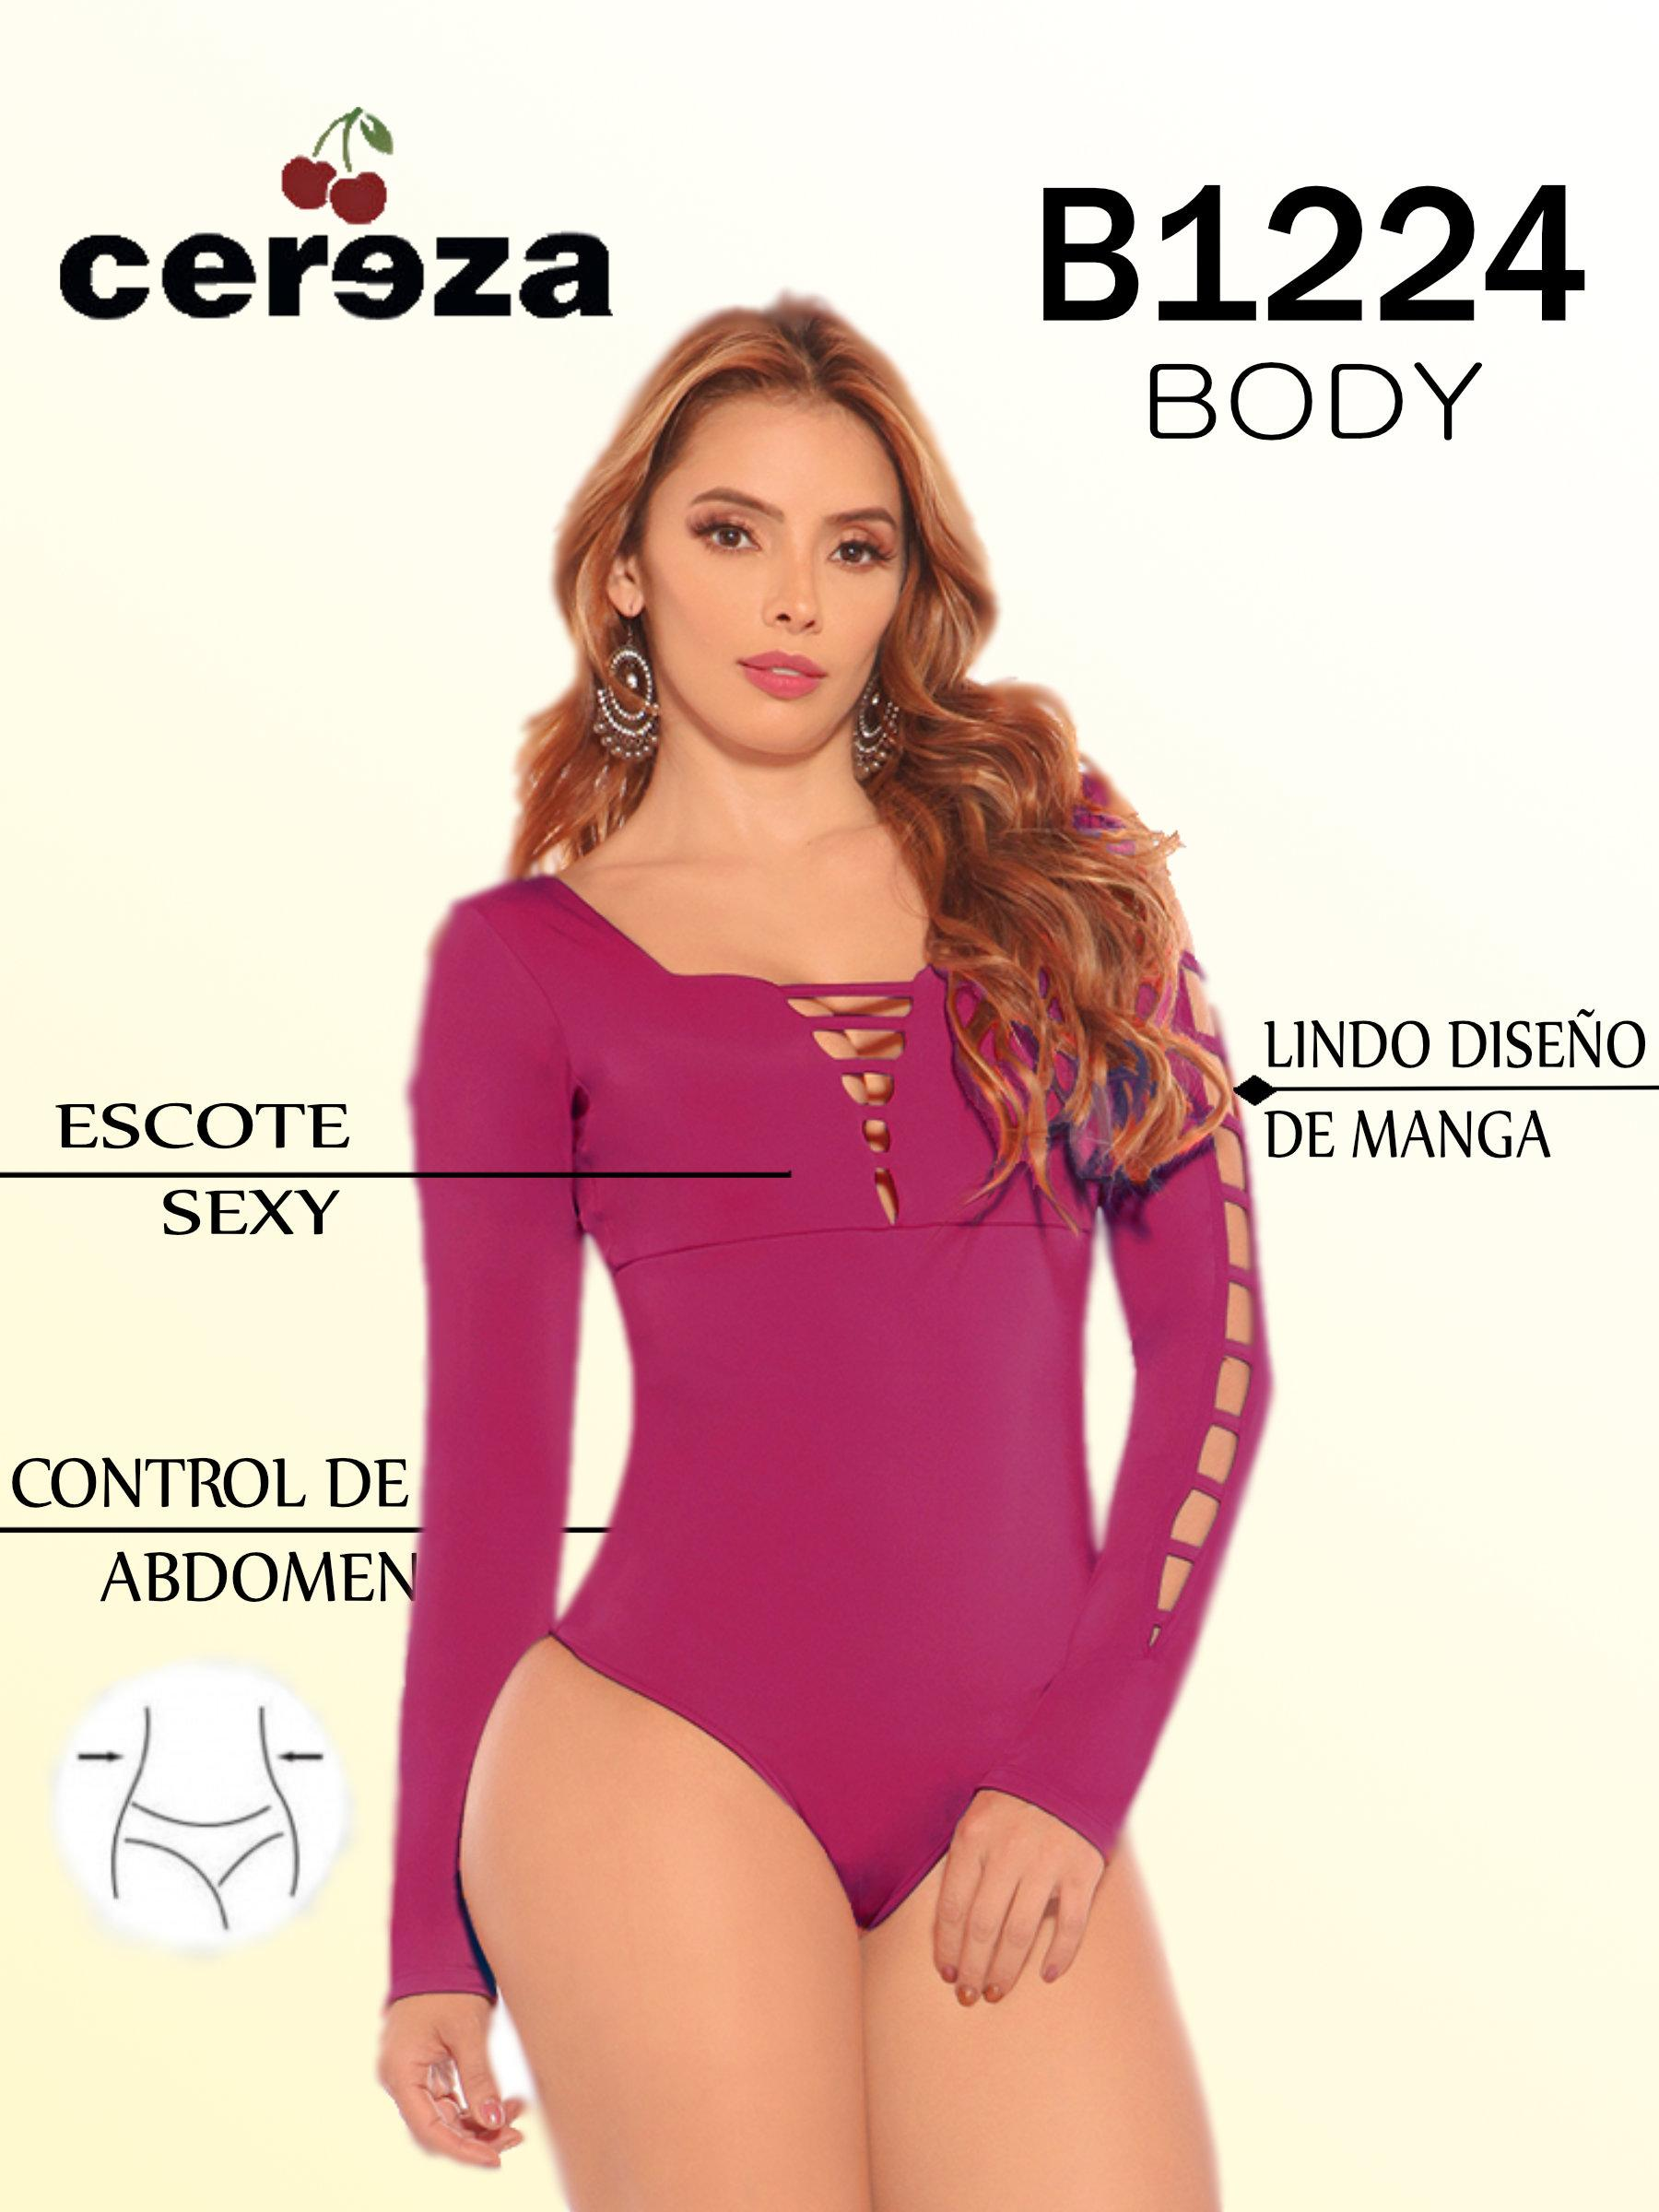 Body Colombiano de Moda Con Mangas largas y Diseño Exclusivo. Marca CEREZA Color Vino Tinto